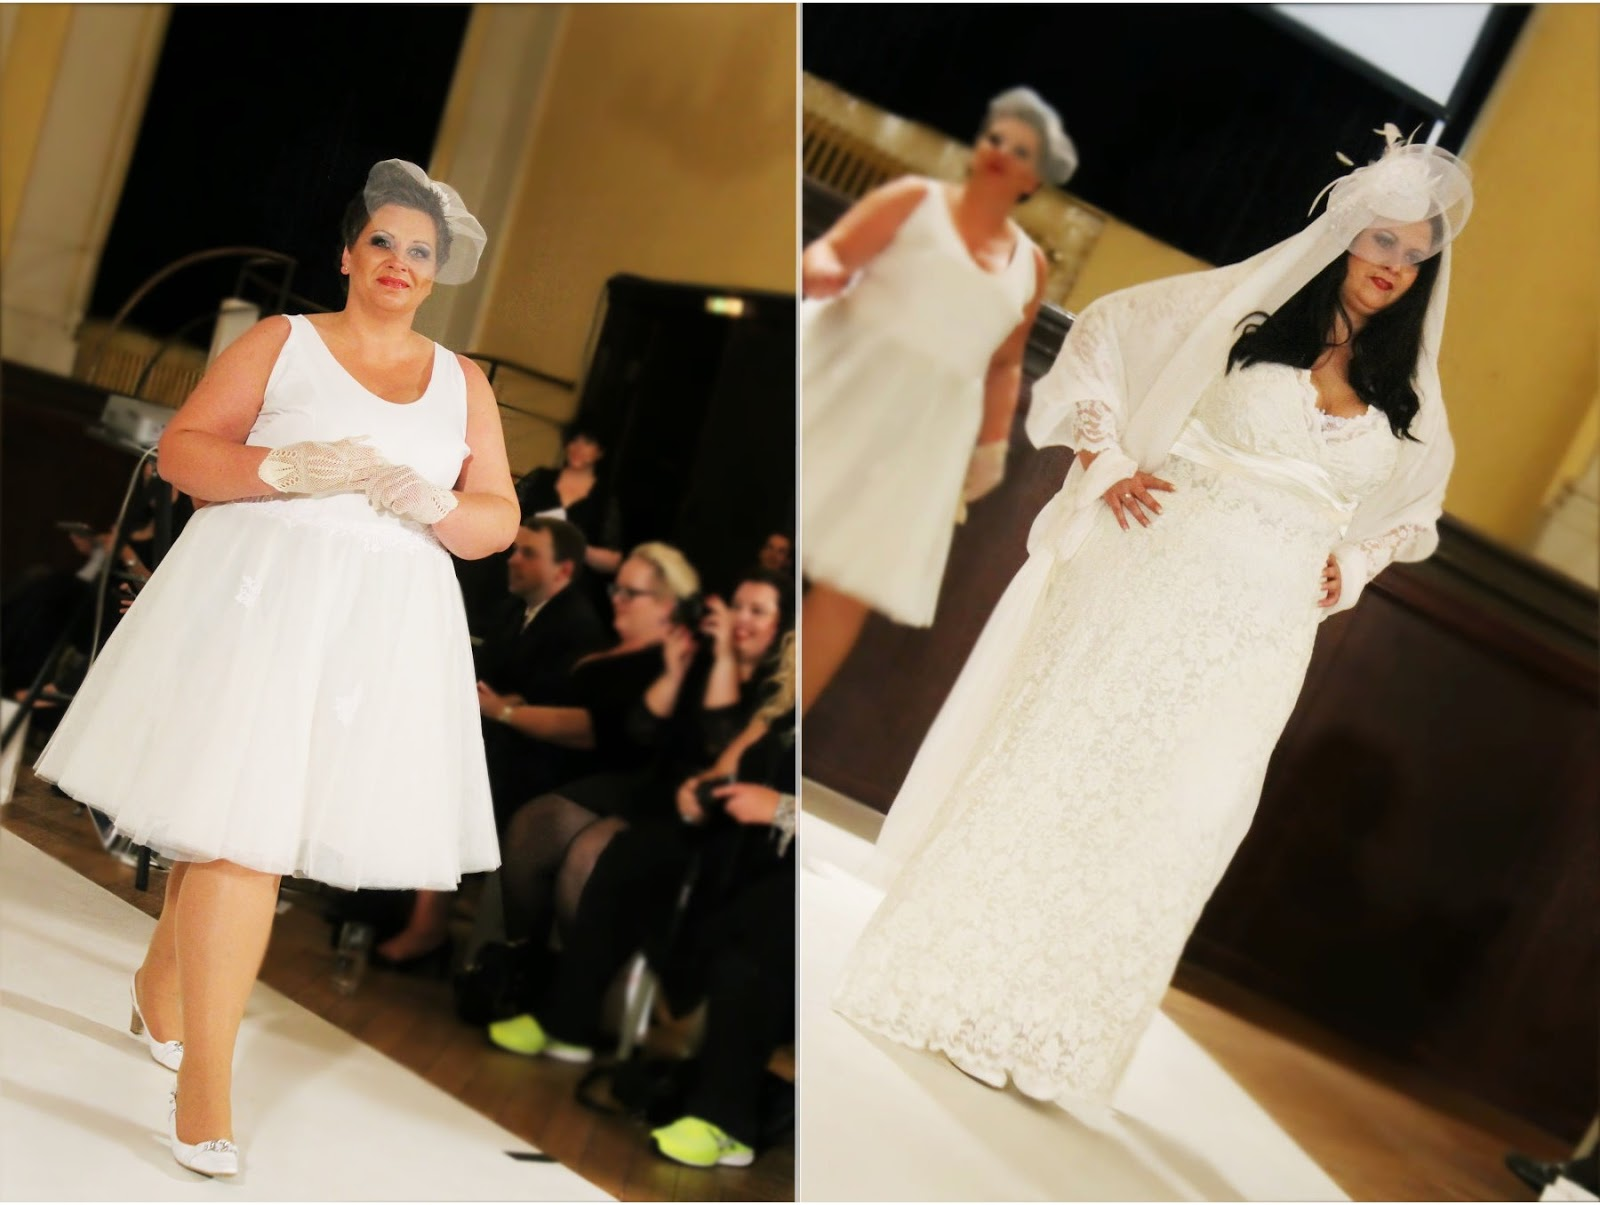 Femme Fatale: Events, Fashion; Kurvenrausch Plussize Fashionshow ...